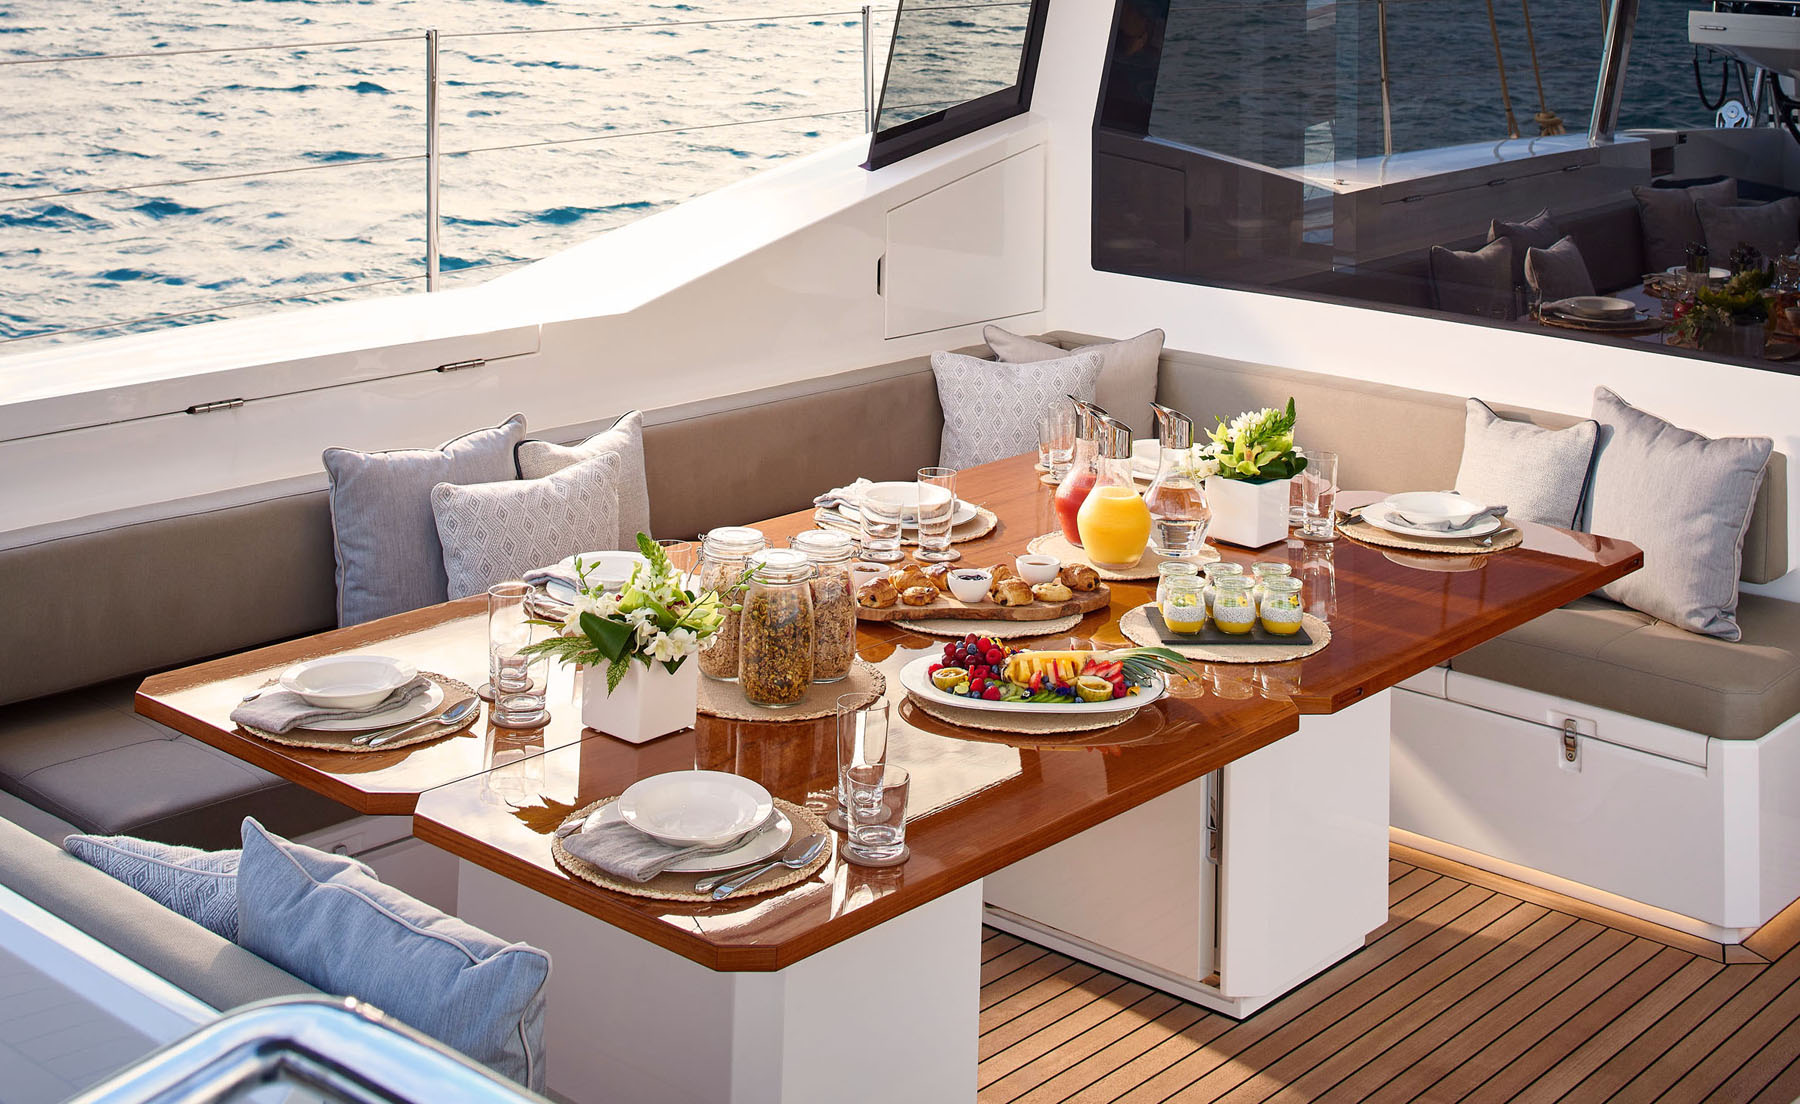 Breakfast setup on the S/Y Archelon